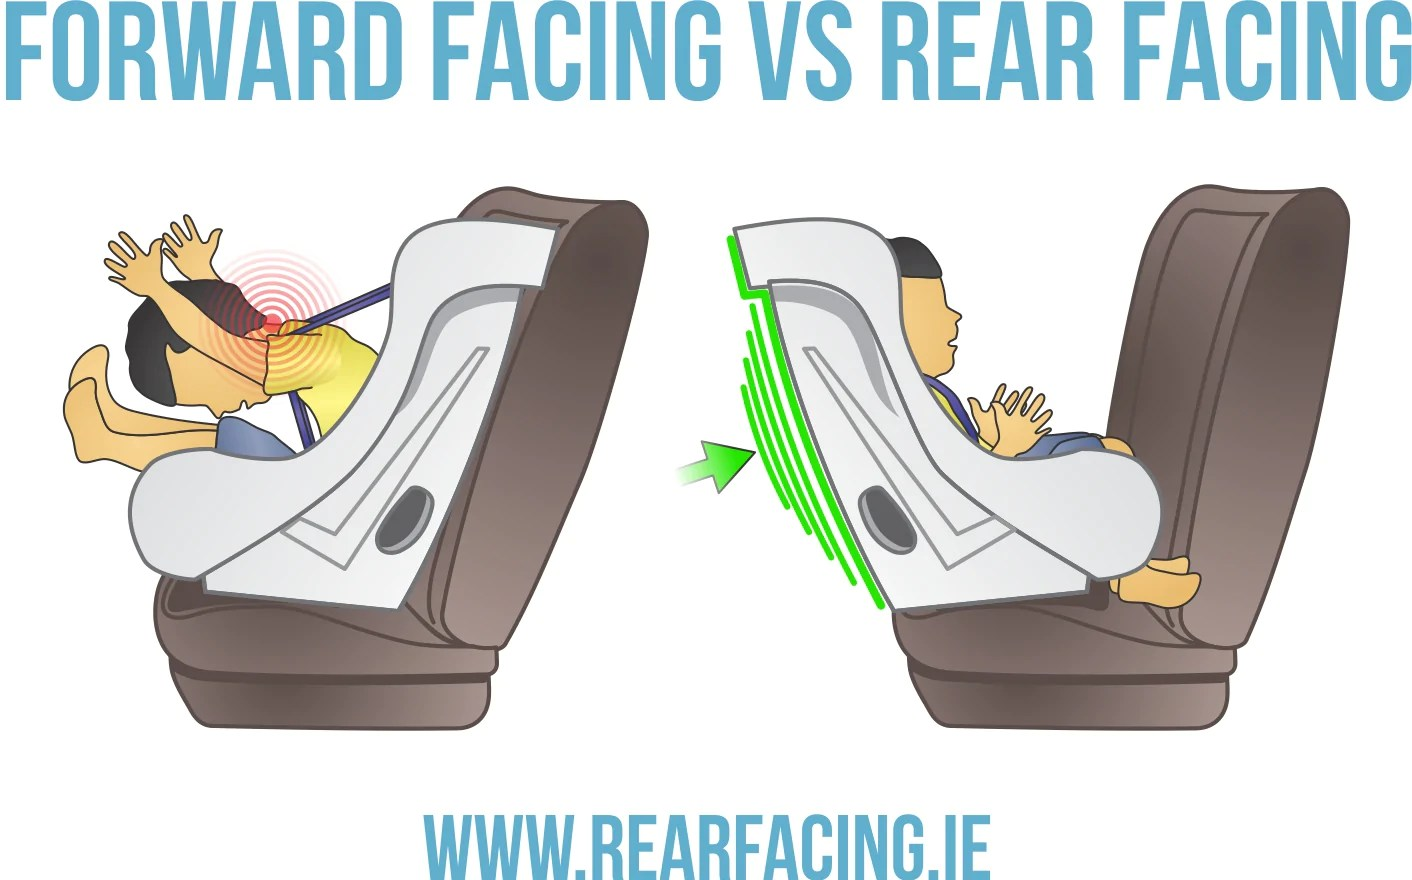 Infant Seat Vs Safety Seat Safest Car Seats For Your Baby Toddler Child Rearfacing Ie